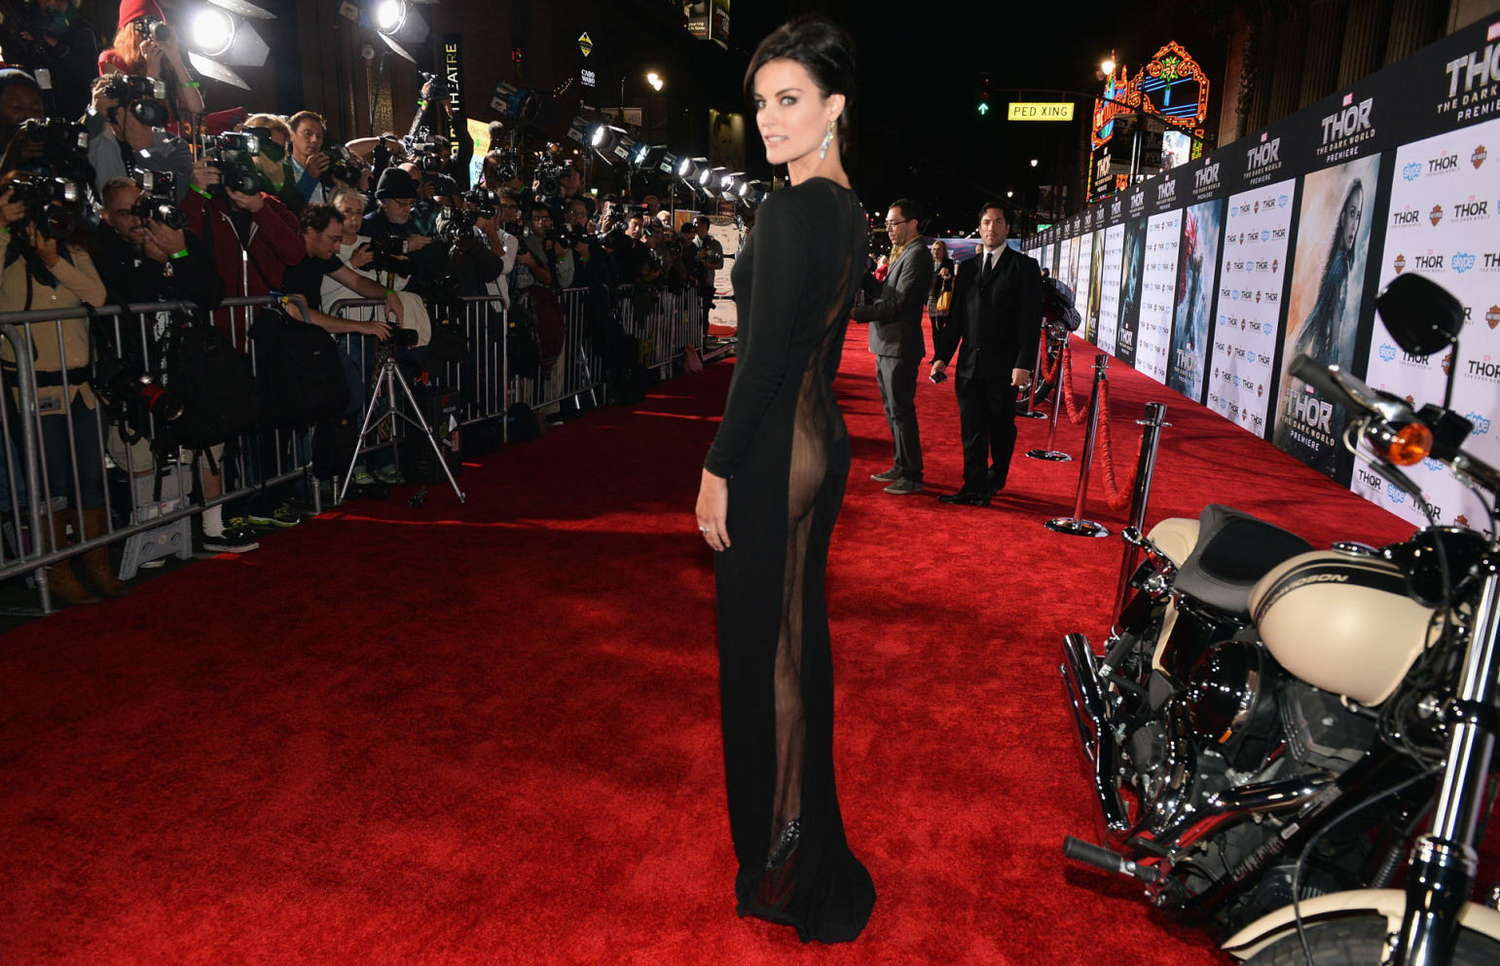 http://www.gotceleb.com/wp-content/uploads/celebrities/jaimie-alexander/thor-the-dark-world-premiere-in-los-angeles/Jaimie-Alexander---Thor:-The-Dark-World-Hollywood-Premiere--03.jpg